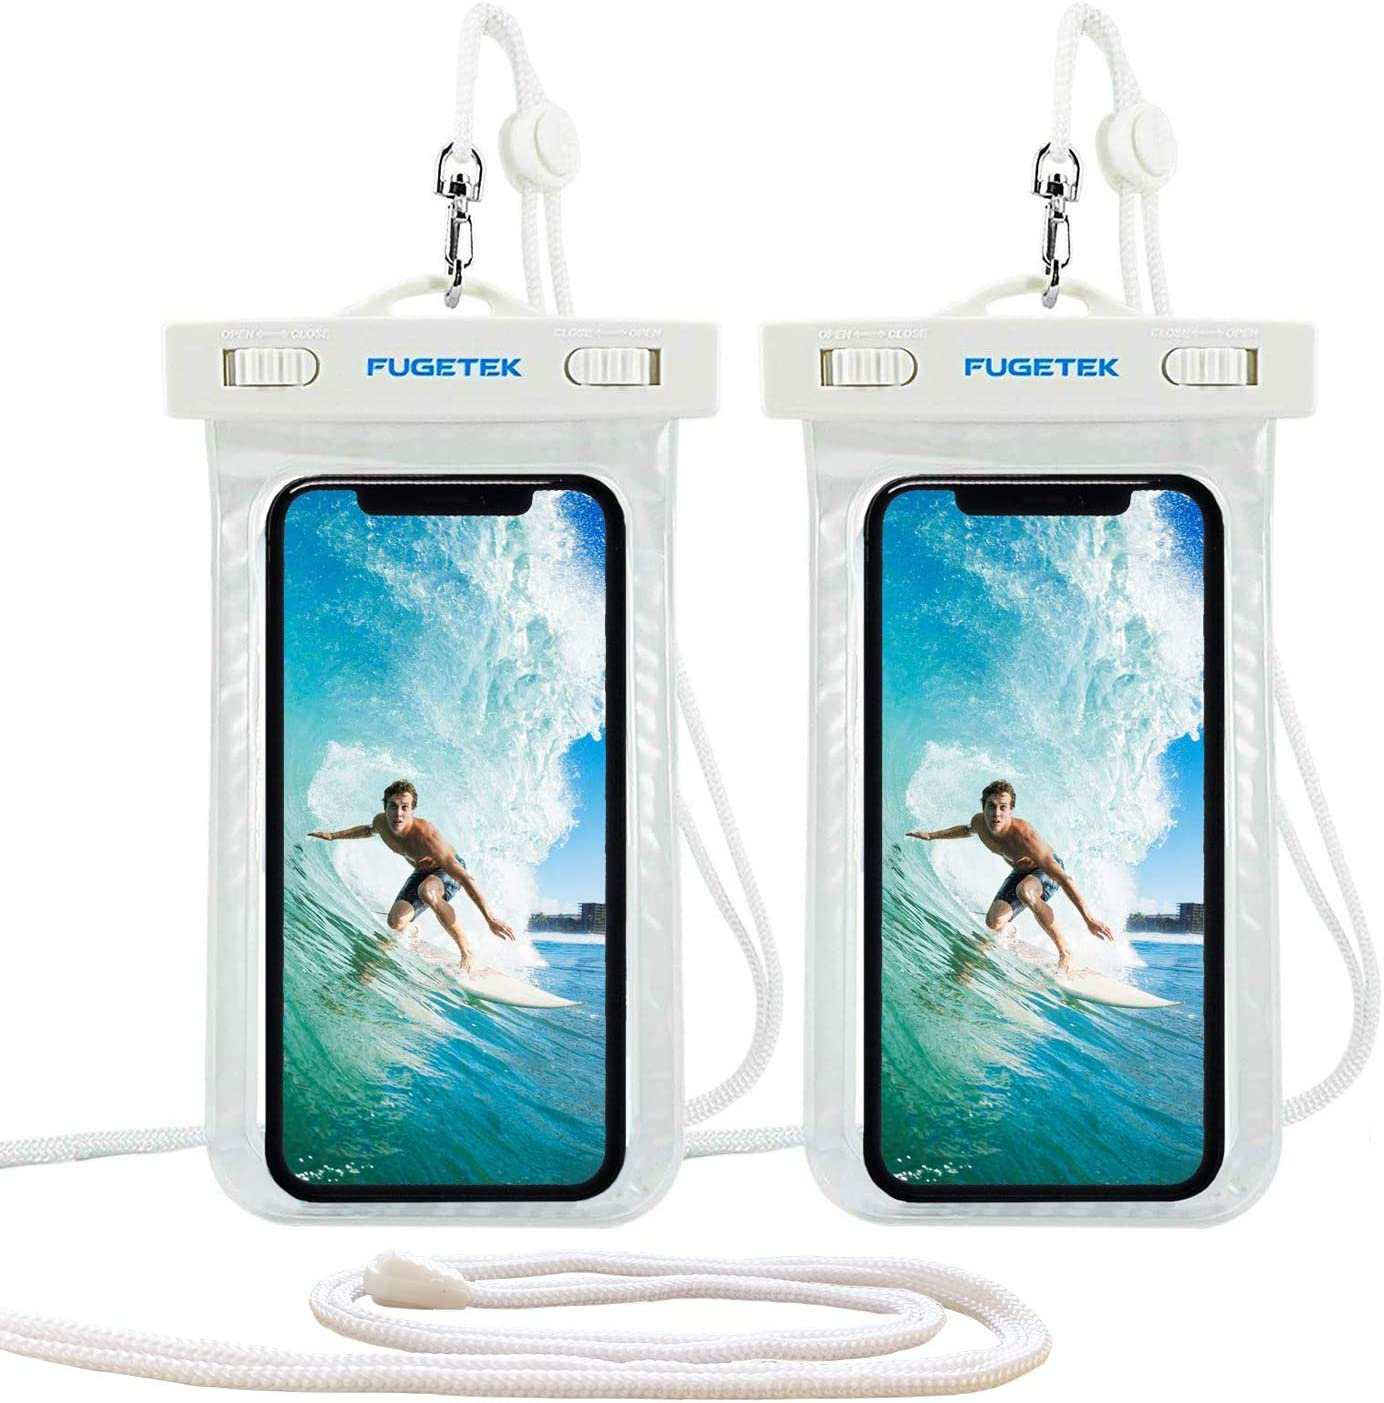 Fugetek Waterproof Case Dry Bag Cell Phone Pouch, IPX8, Universal, for iPhone 11, XR/XS Max, XS/X, 8/8P, Android Samsung, Pixel, HTC Smartphones, for Travel, Beach, Pool, Hiking, White, (2 Pack)